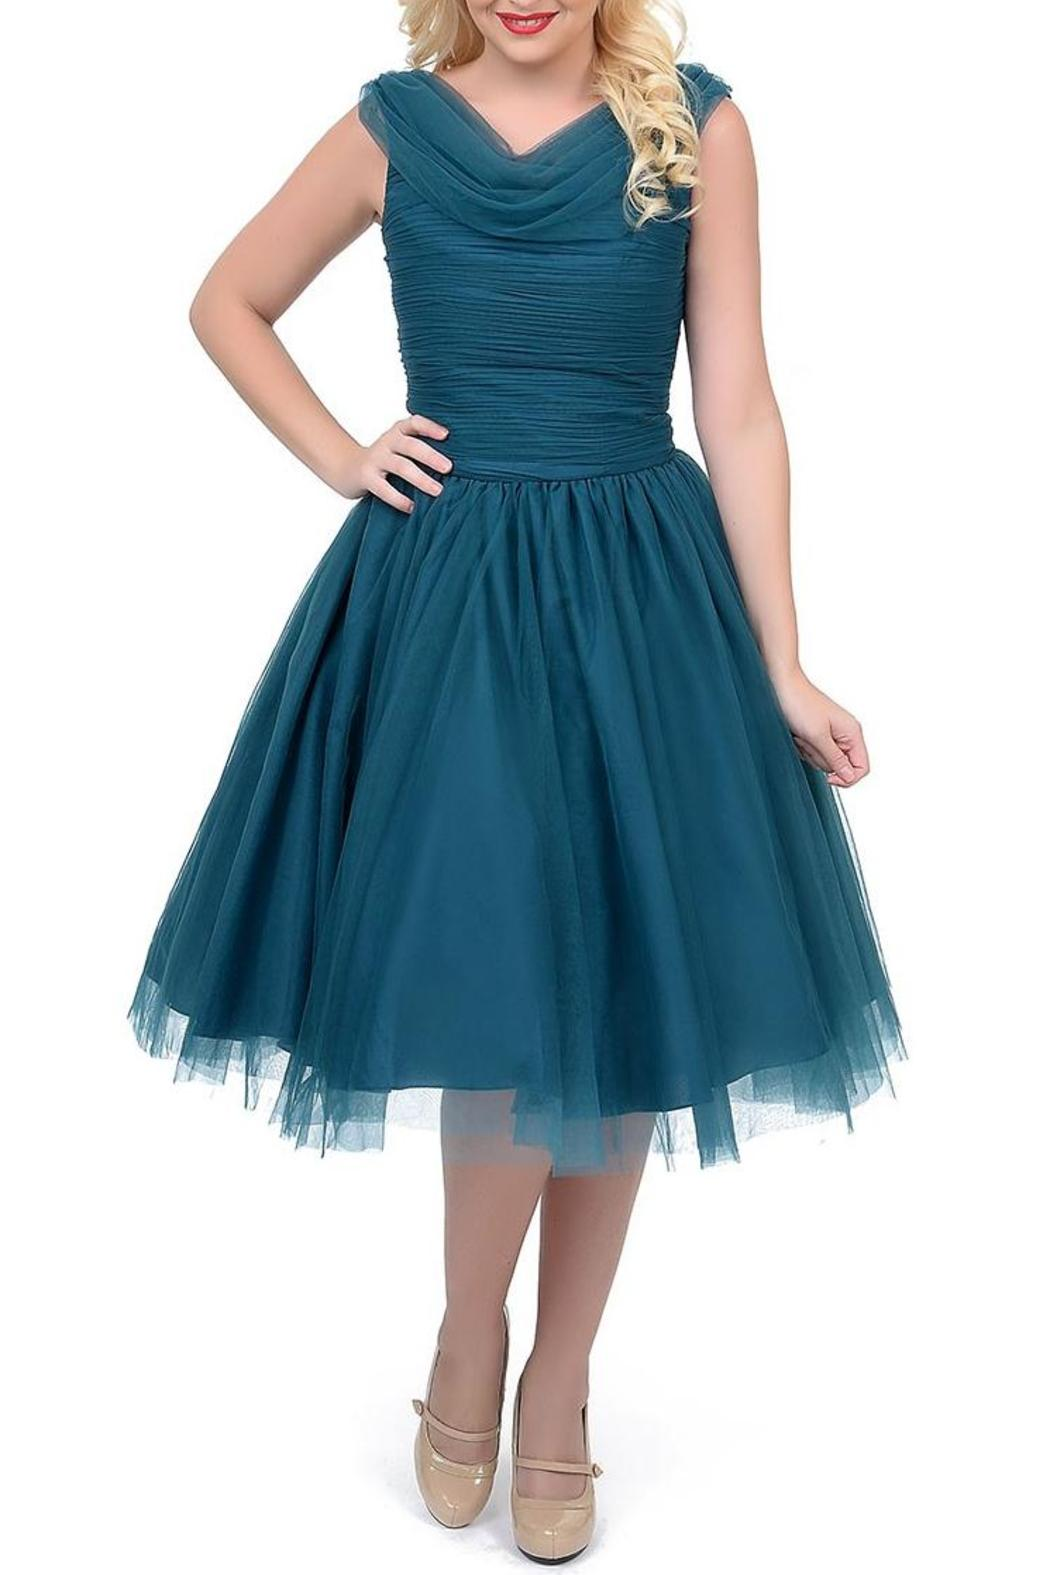 Unique Vintage Teal Cocktail Dress from Portland by Frock Boutique ...